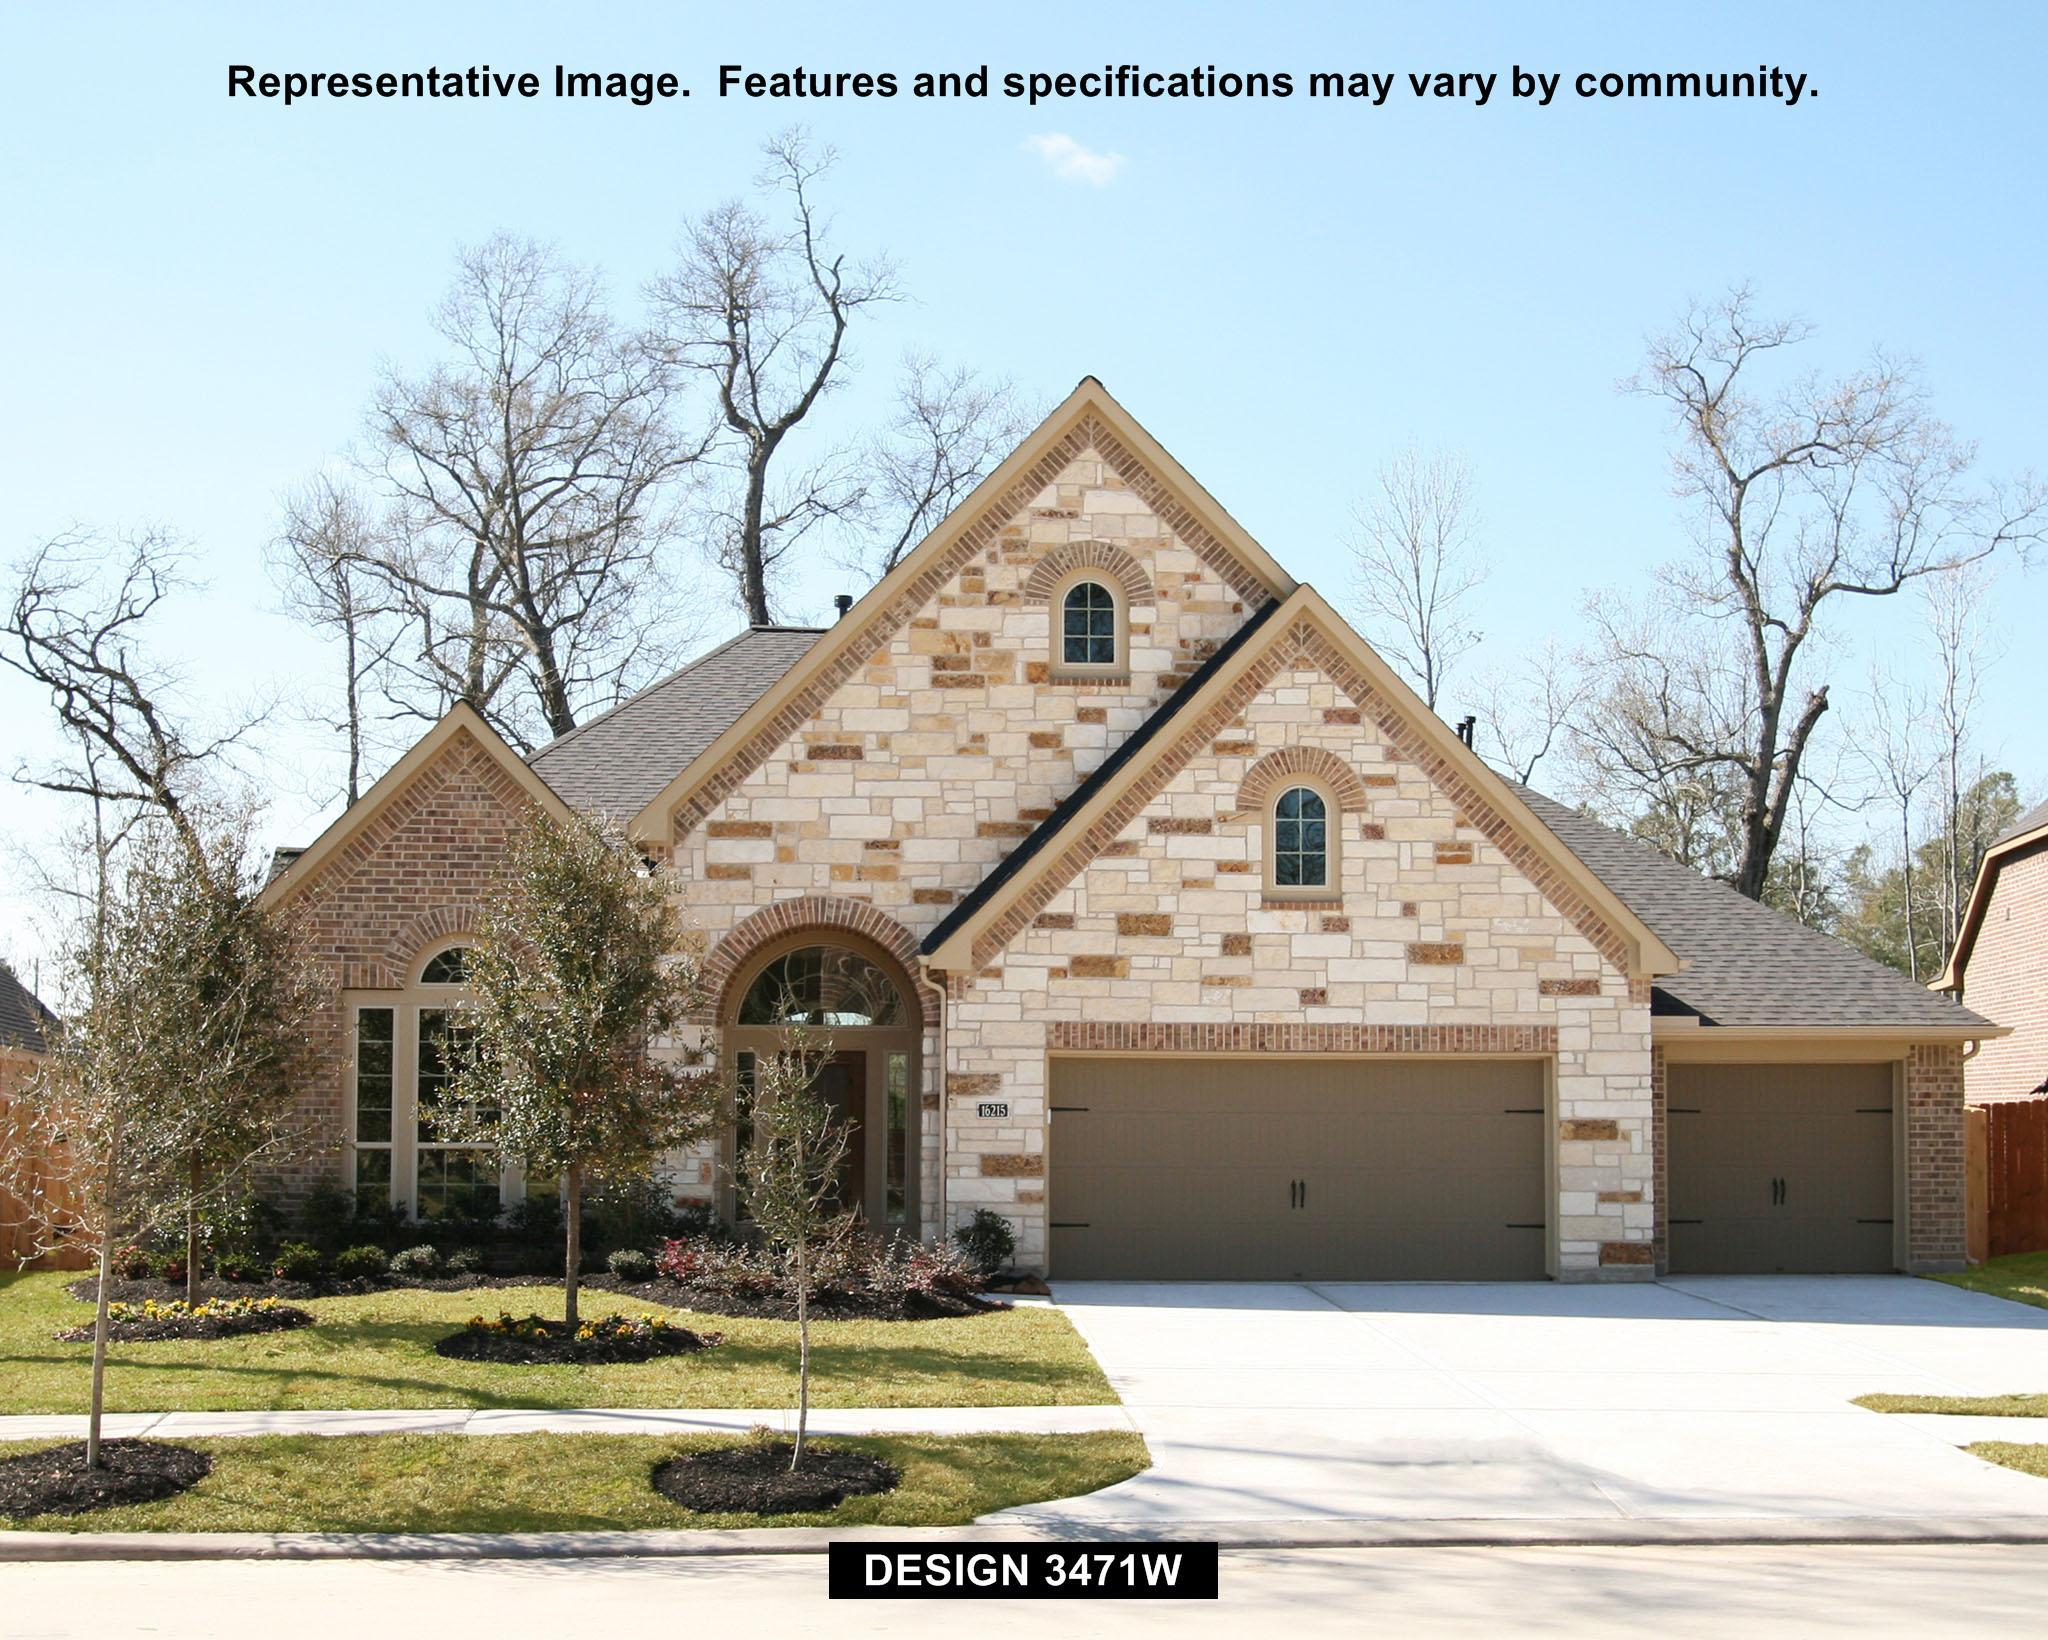 3471W - River Rock Ranch: San Antonio, TX - Perry Homes